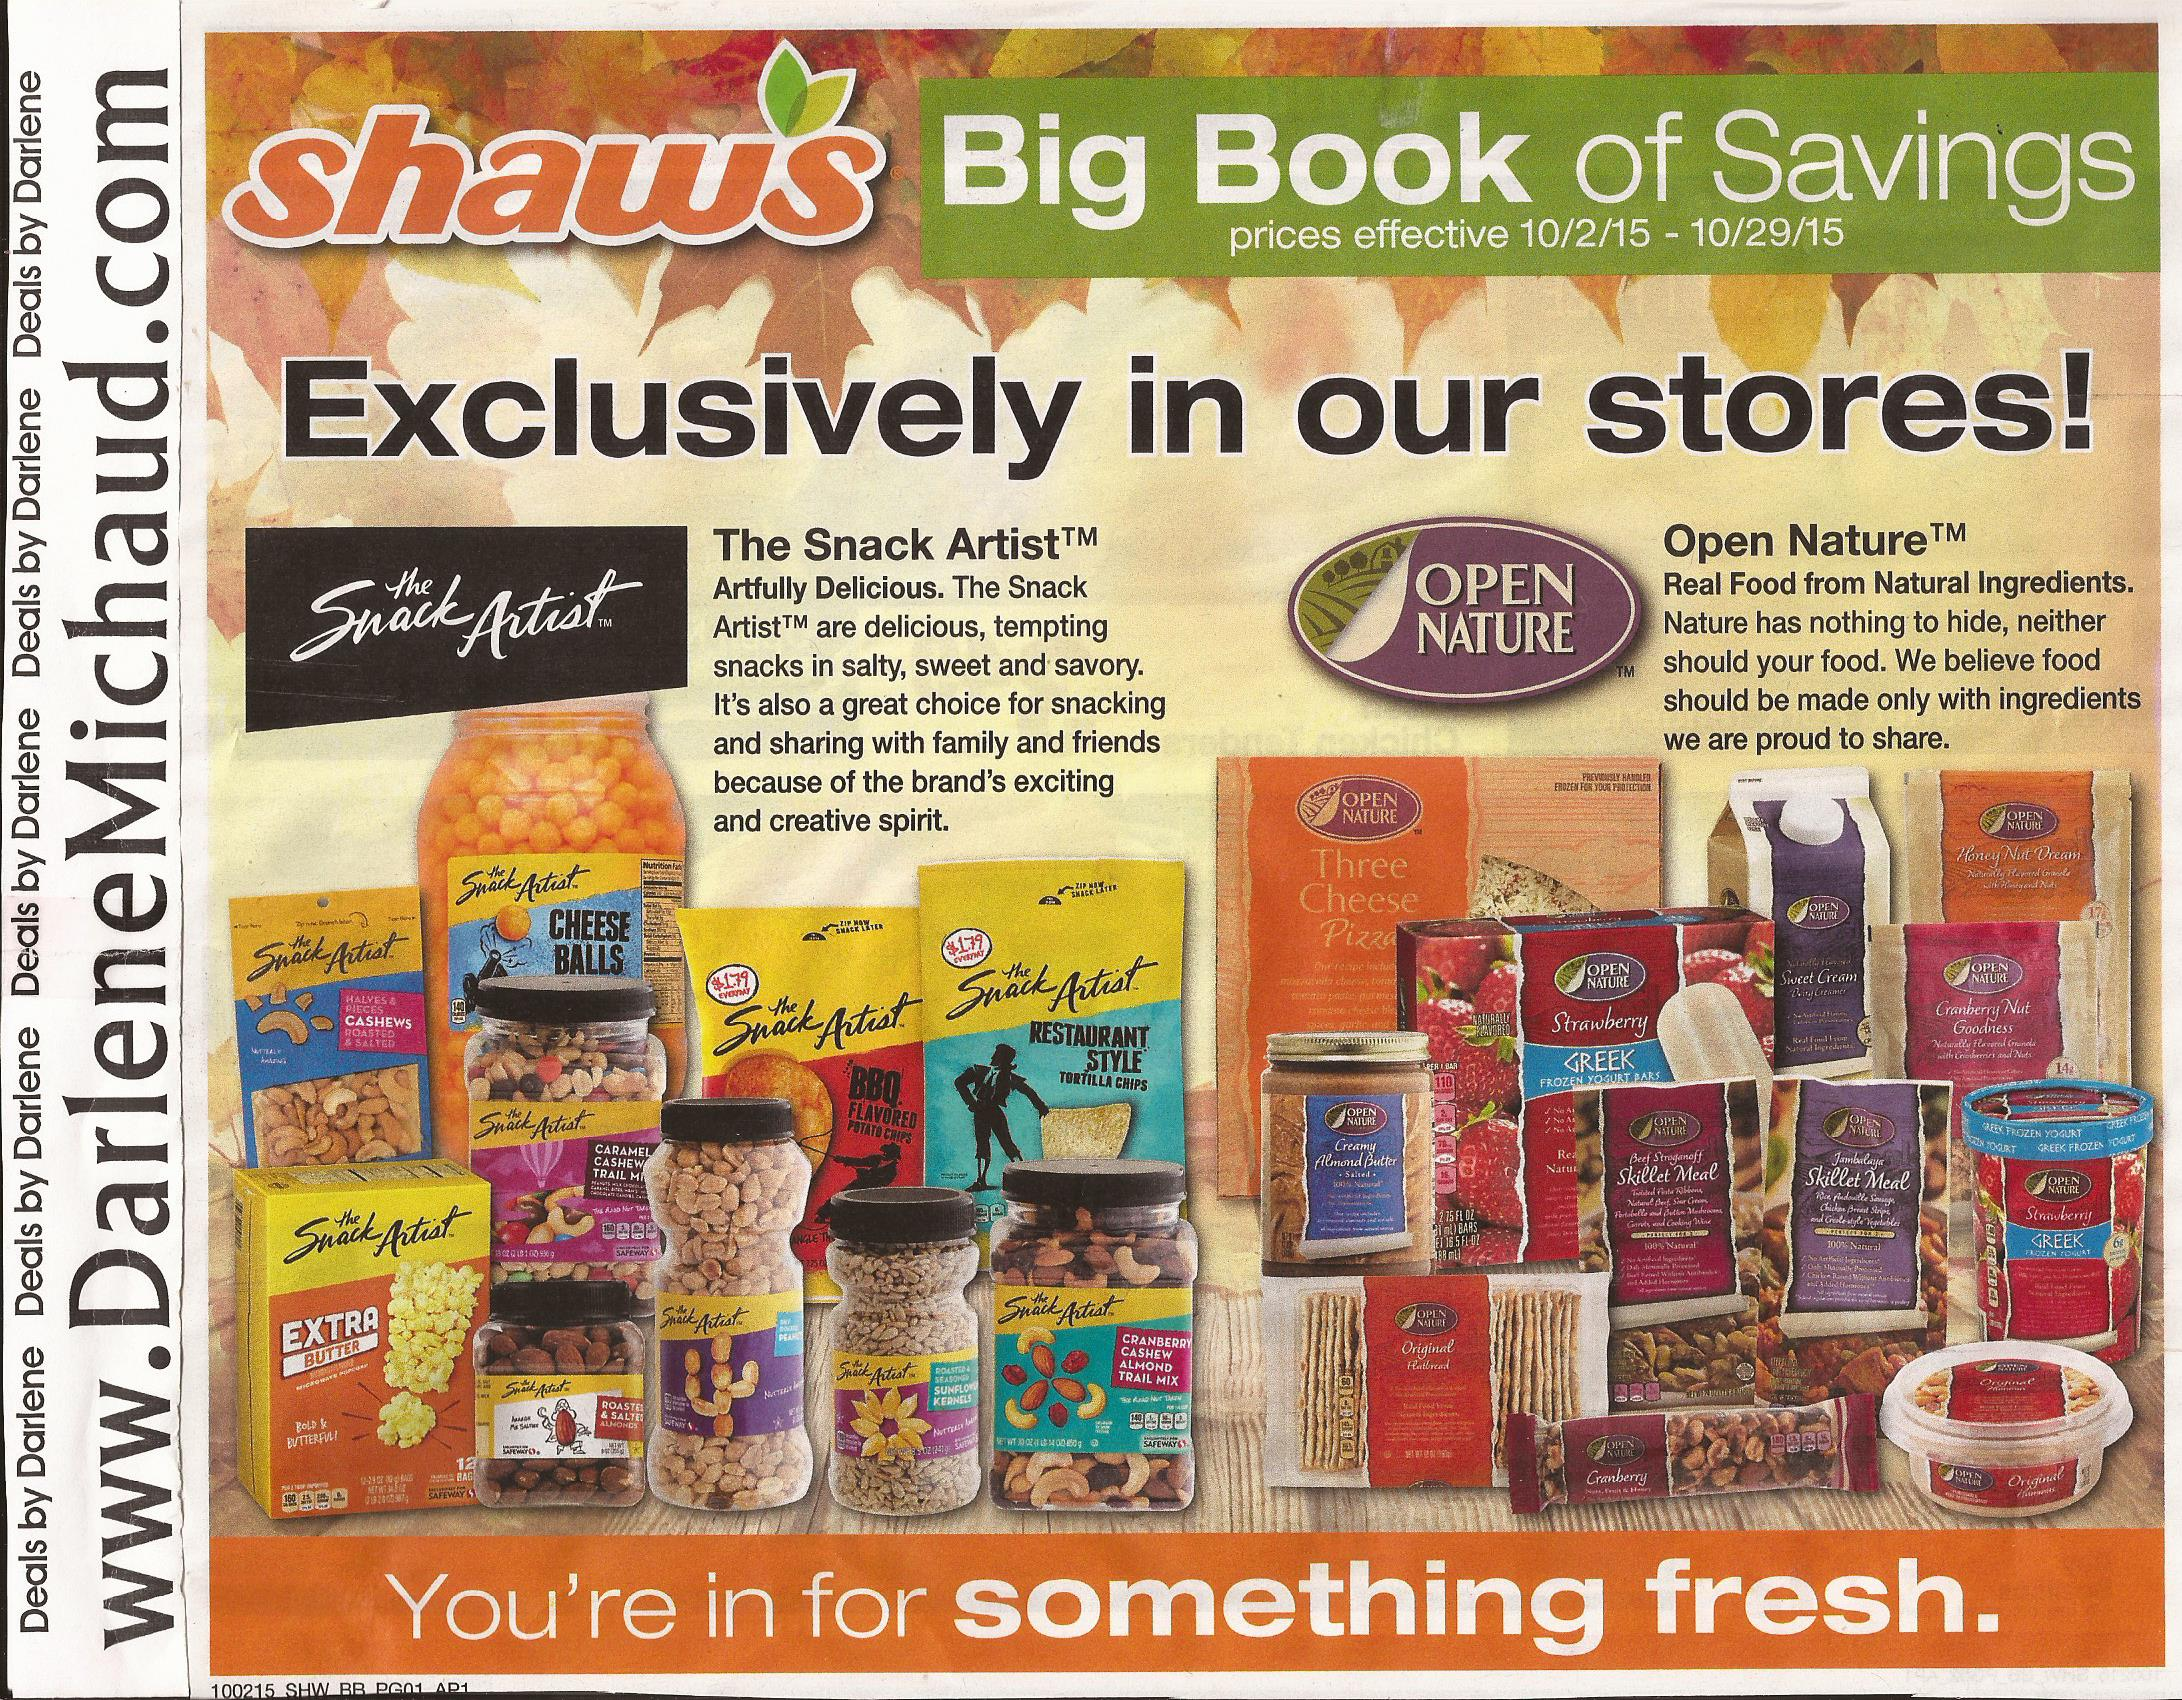 shaws-big-book-savings-10-2-10-29-page-01